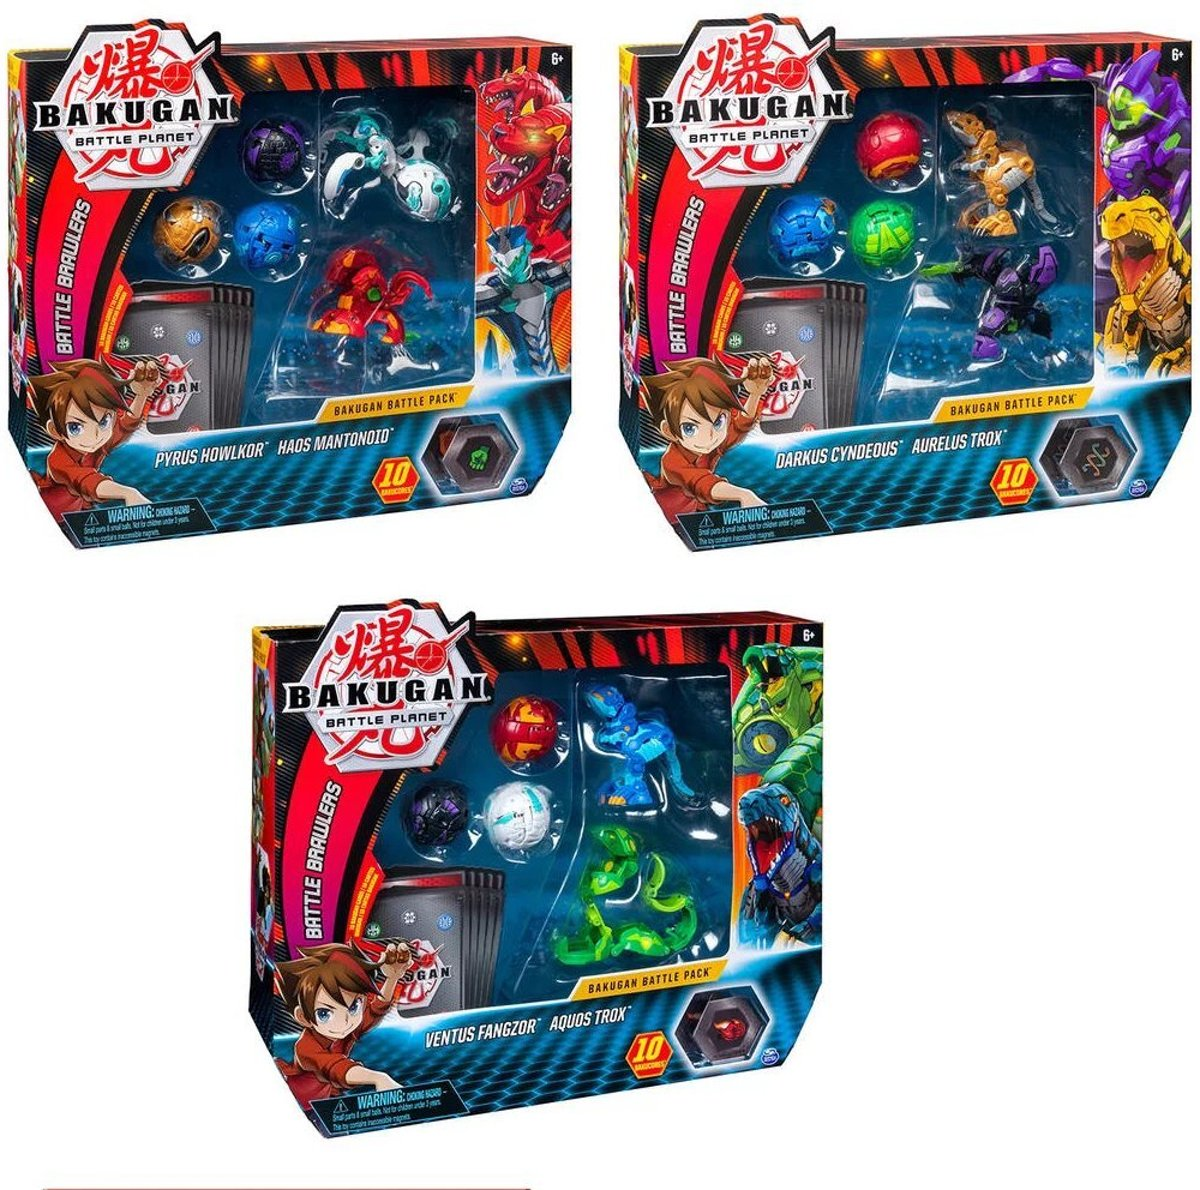 Bakugan Battle Pack Assorti